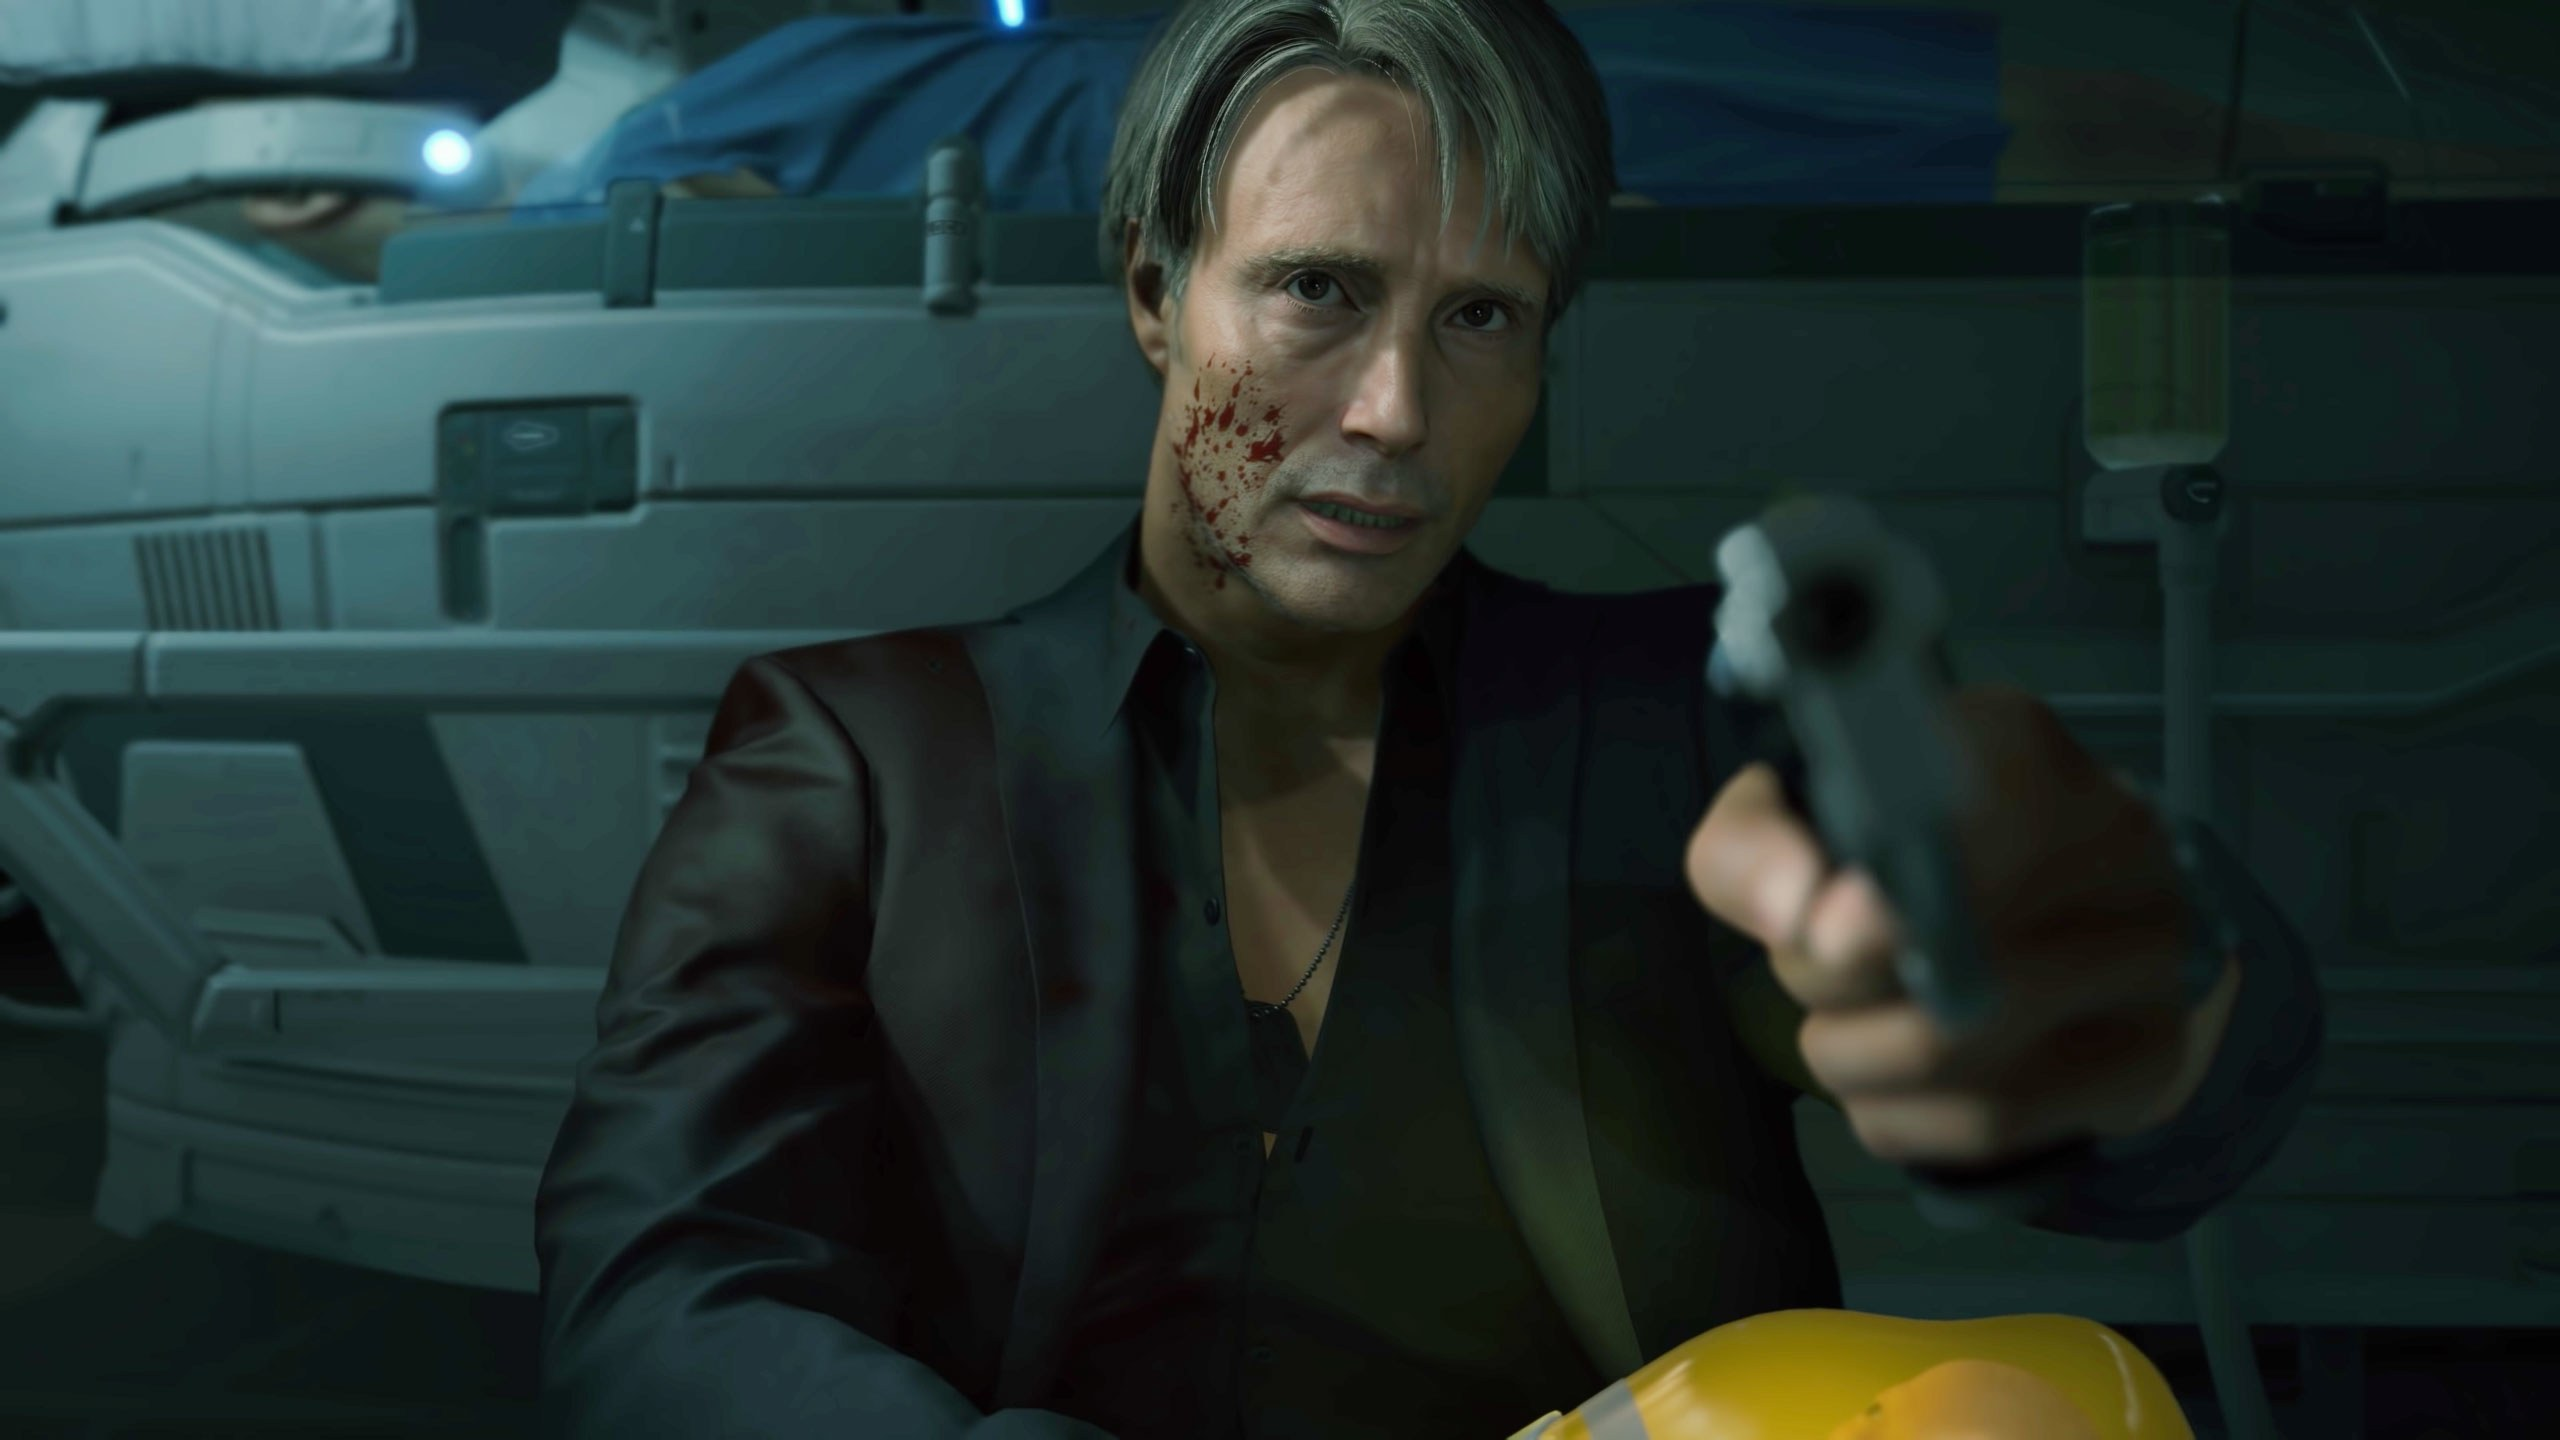 Death Stranding and Control lead the way among 2019 Game Awards nominees screenshot